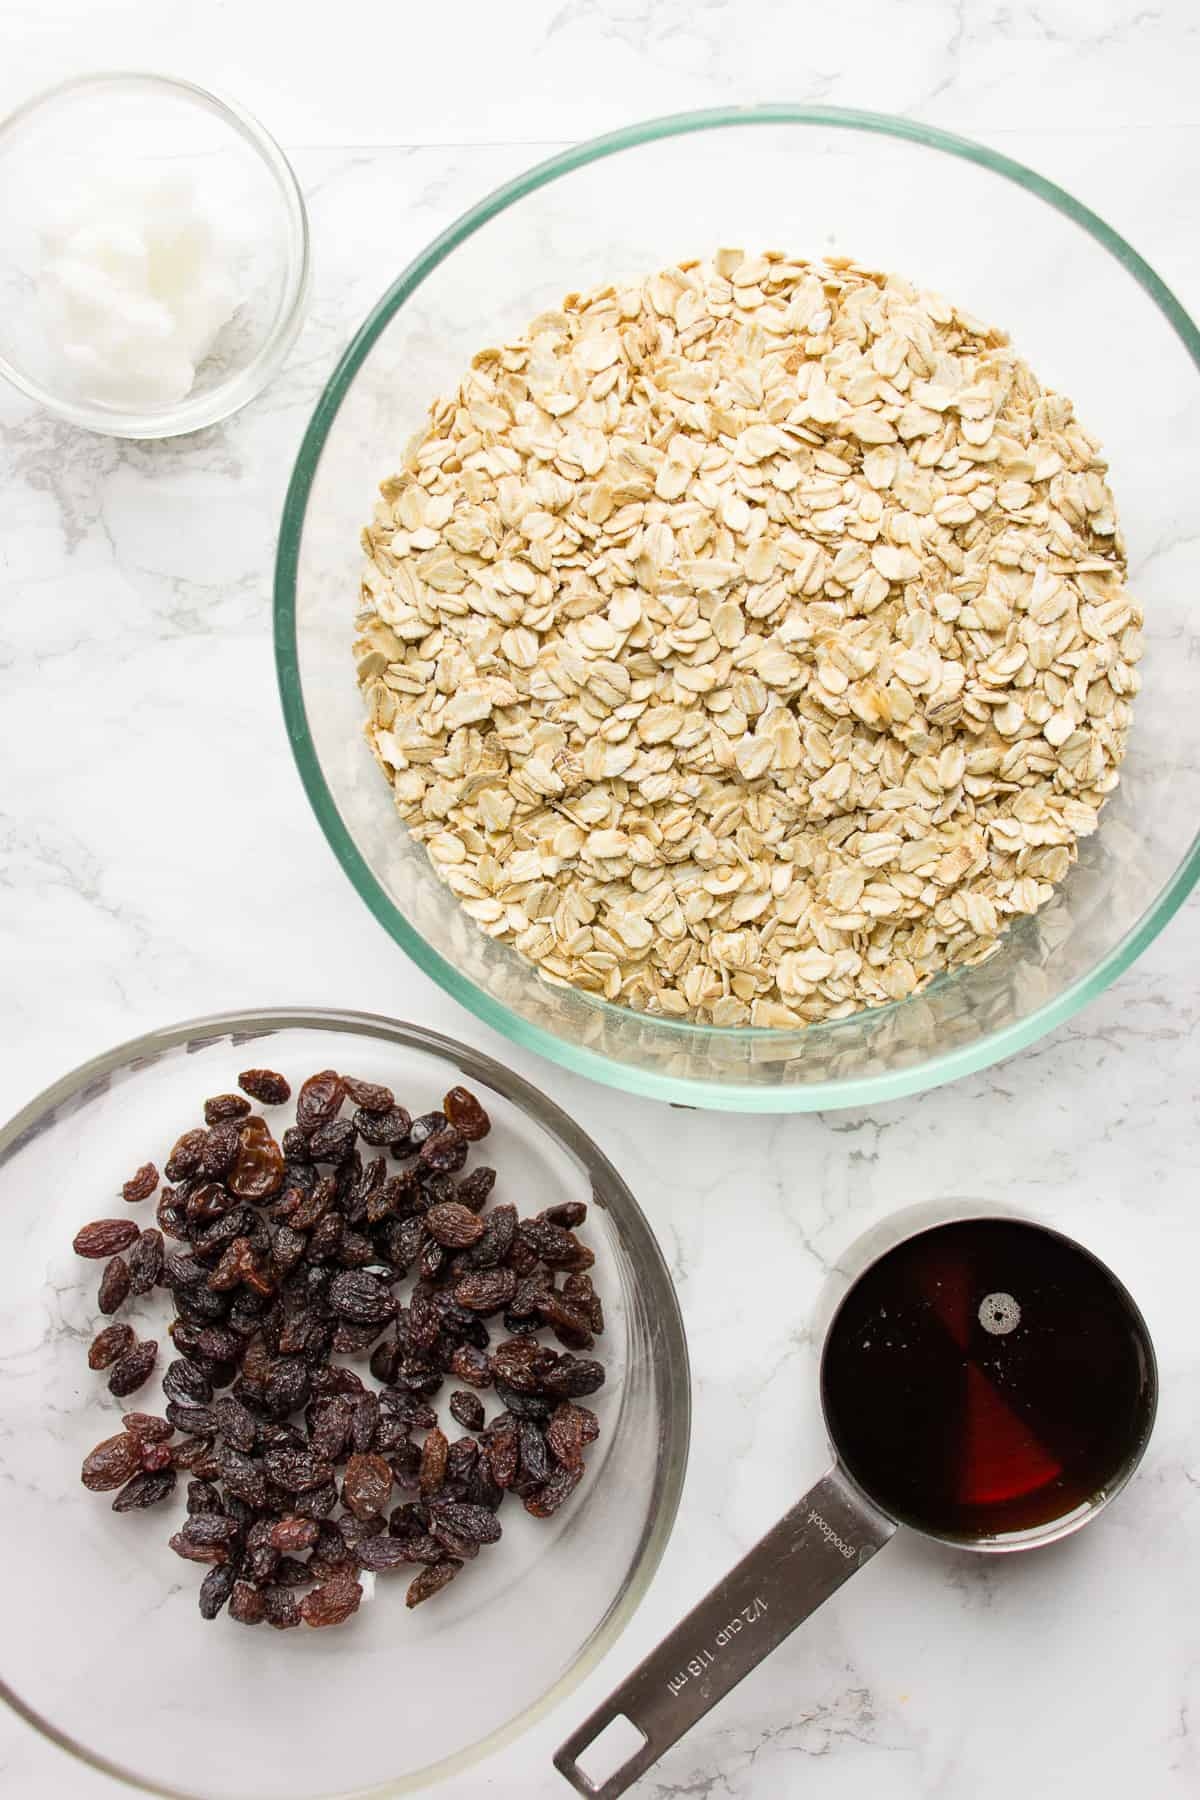 Ingredients for simple granola in glass bowls on a counter